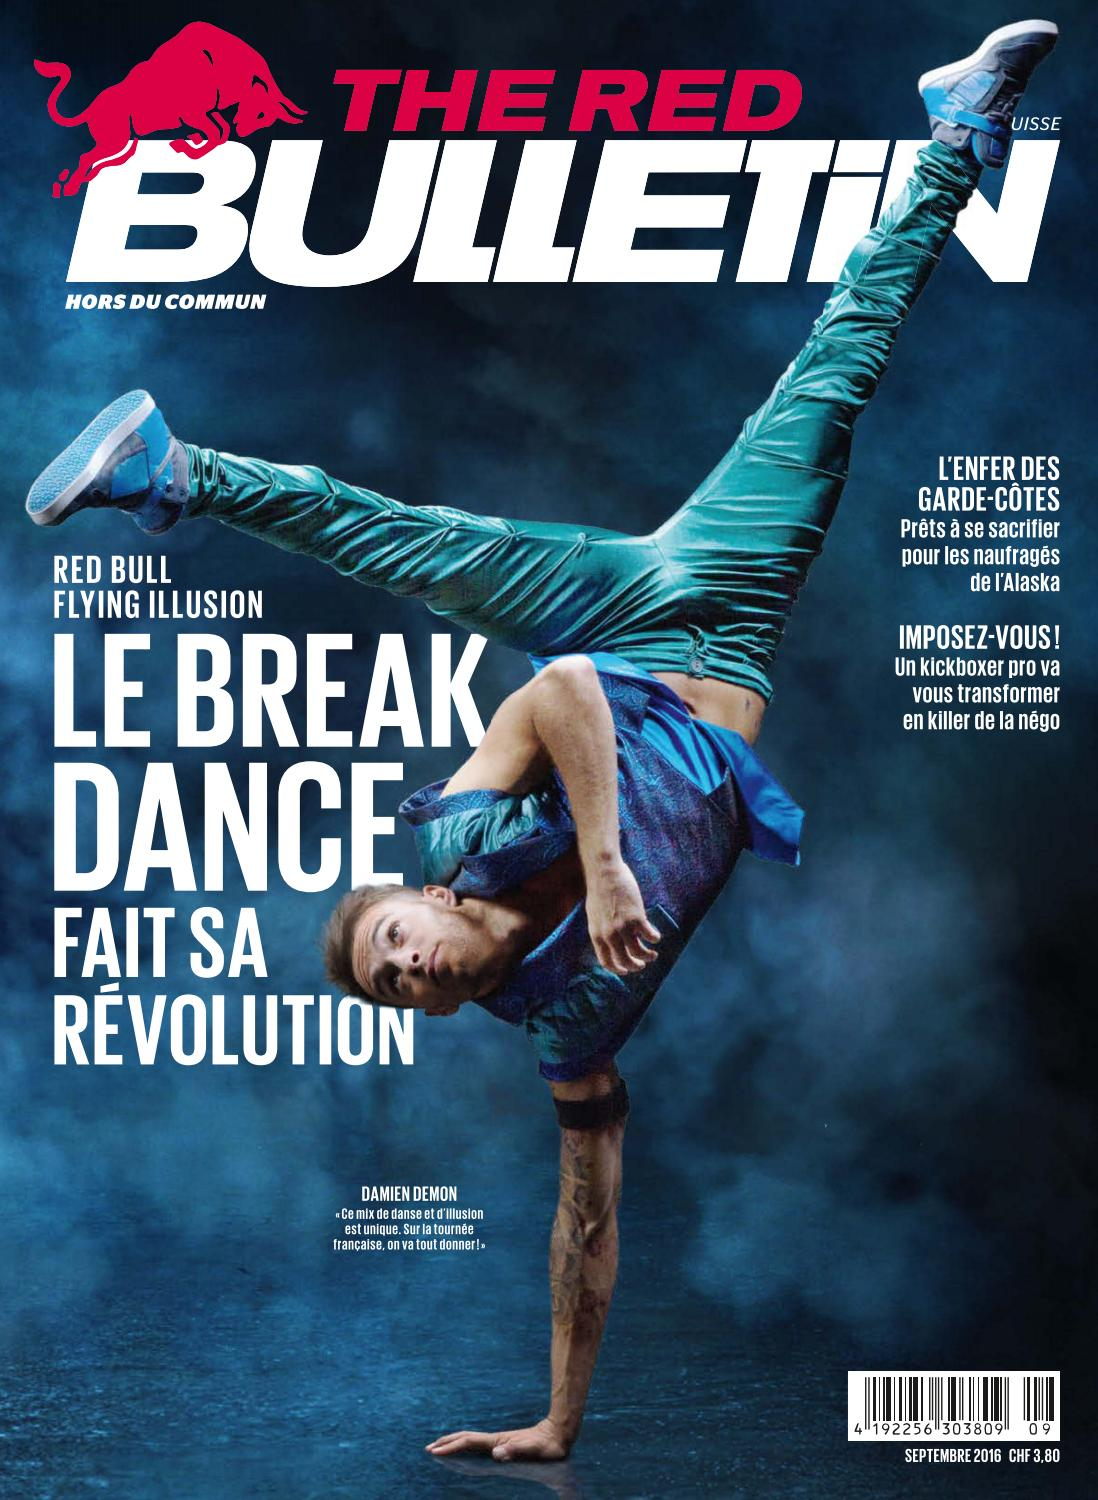 The Red Bulletin Septembre 2016 CHFR by Red Bull Media